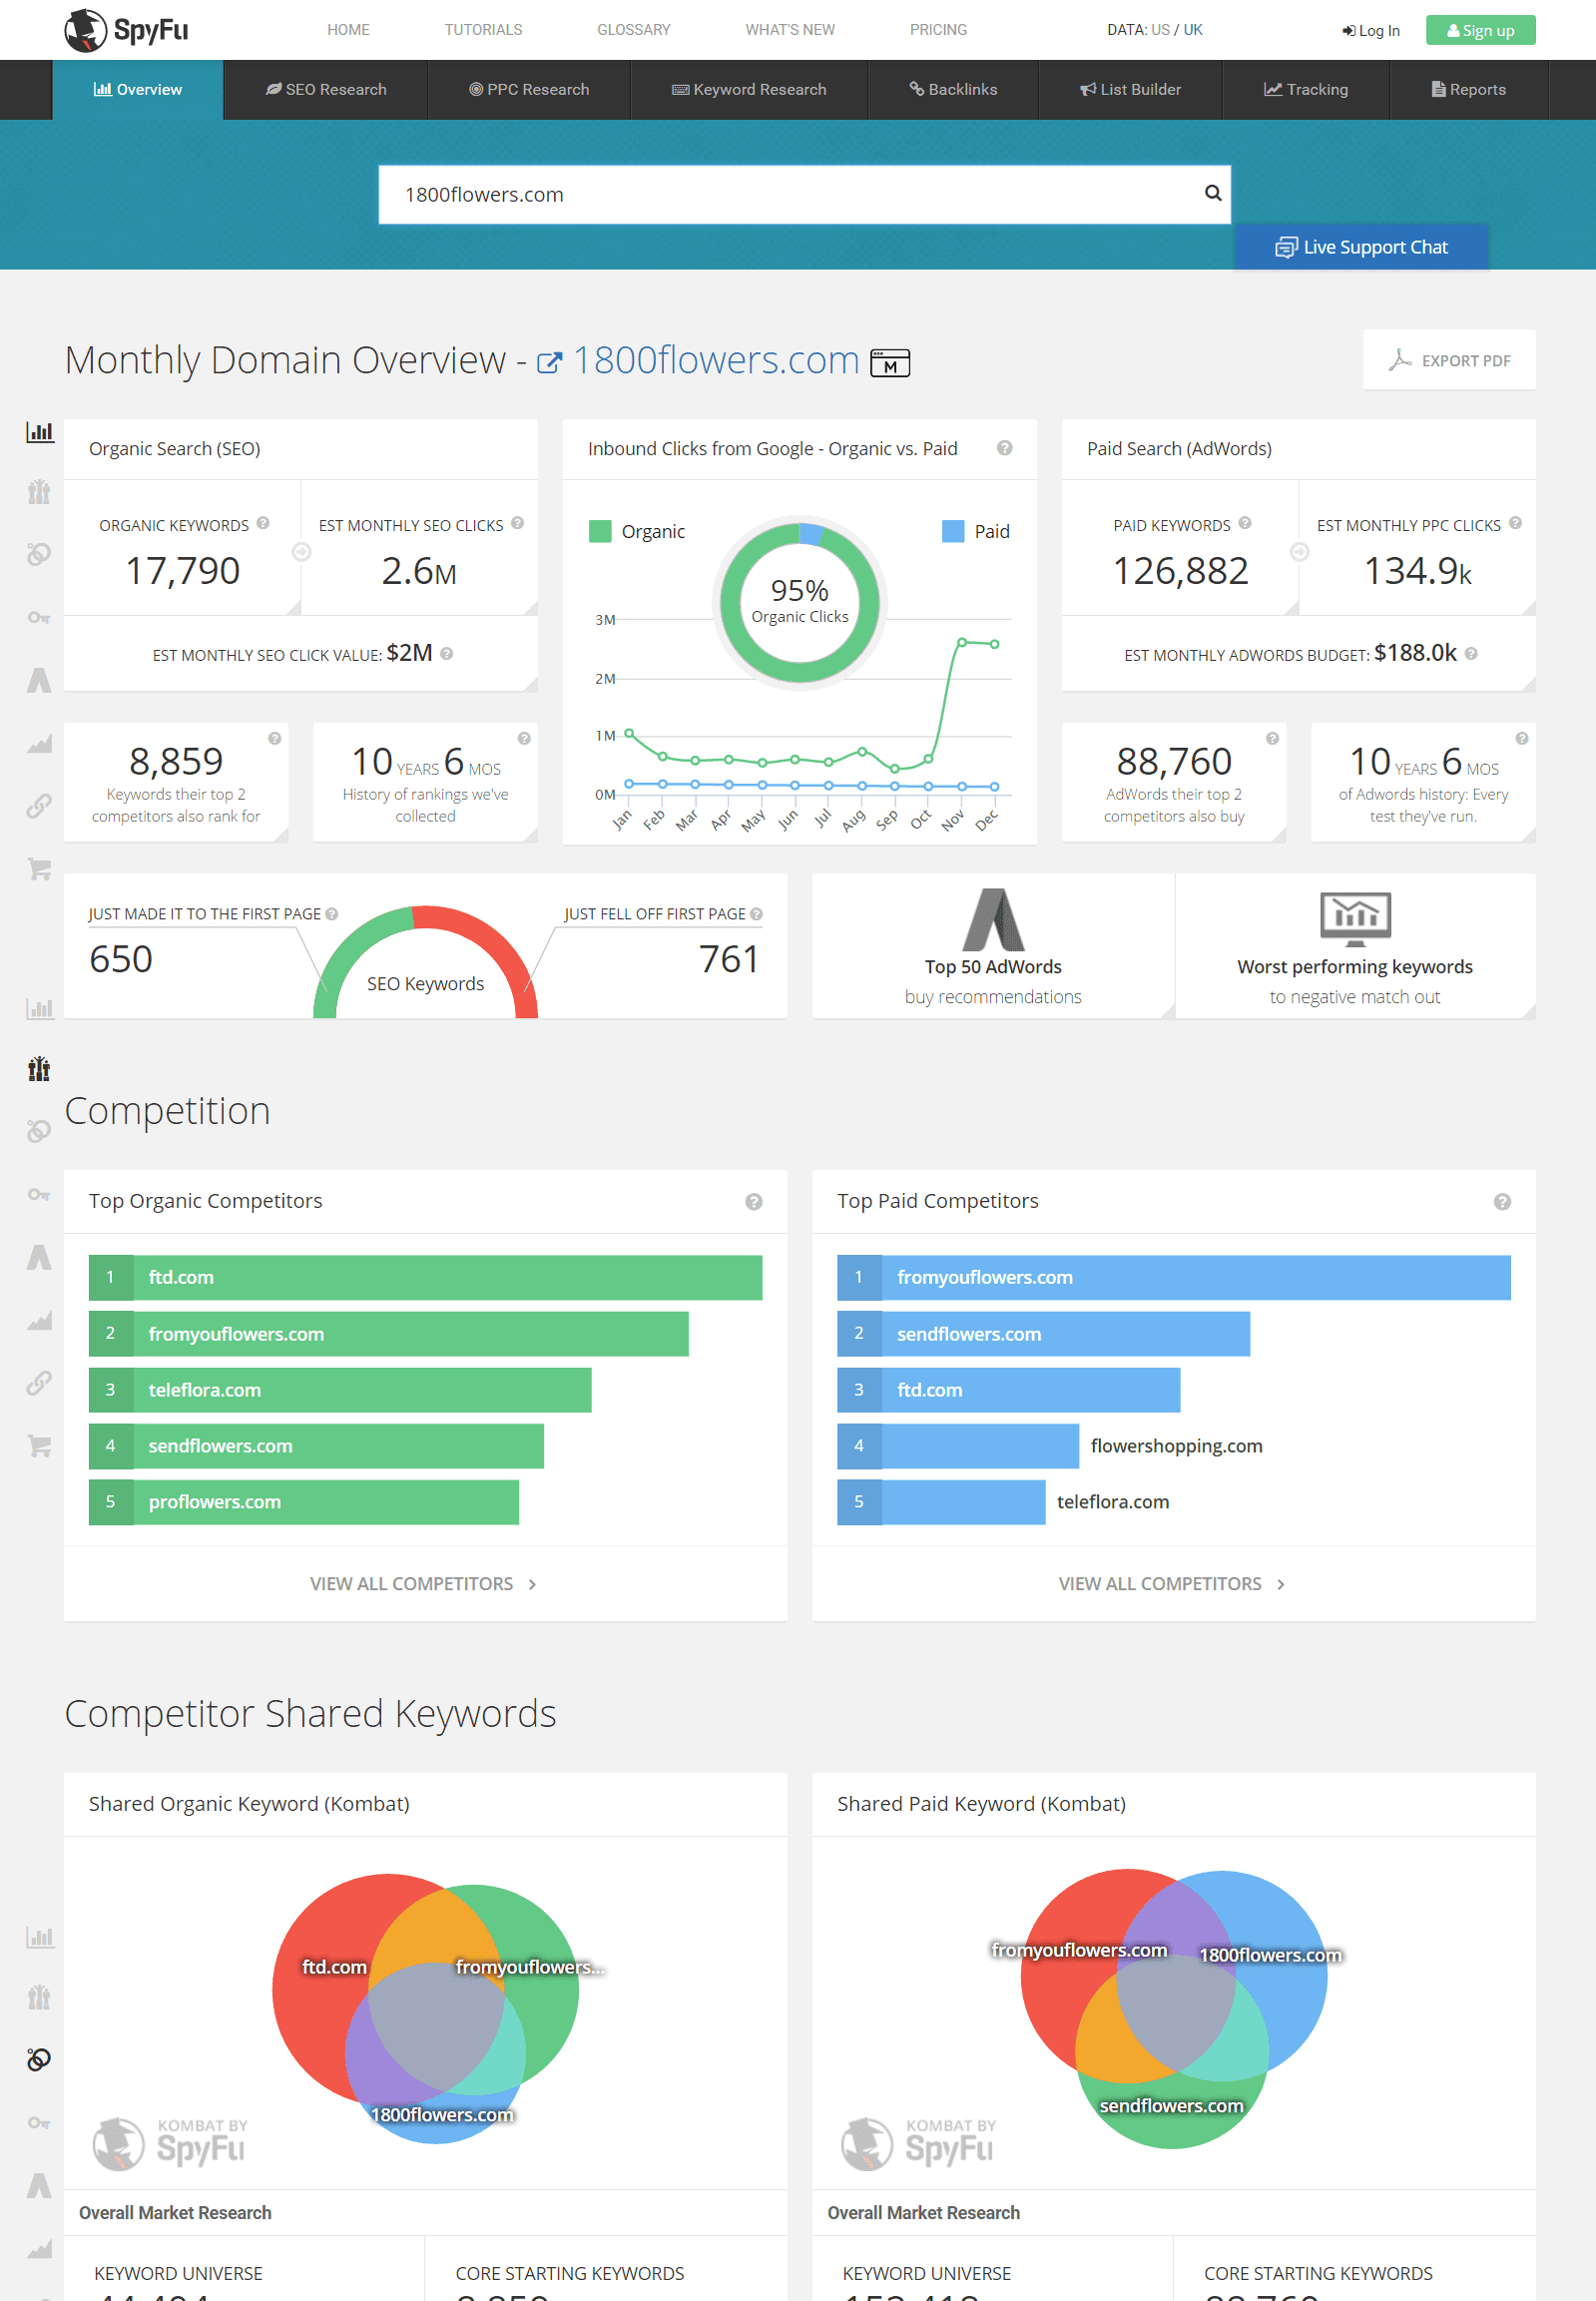 SpyFu for competitor keyword research